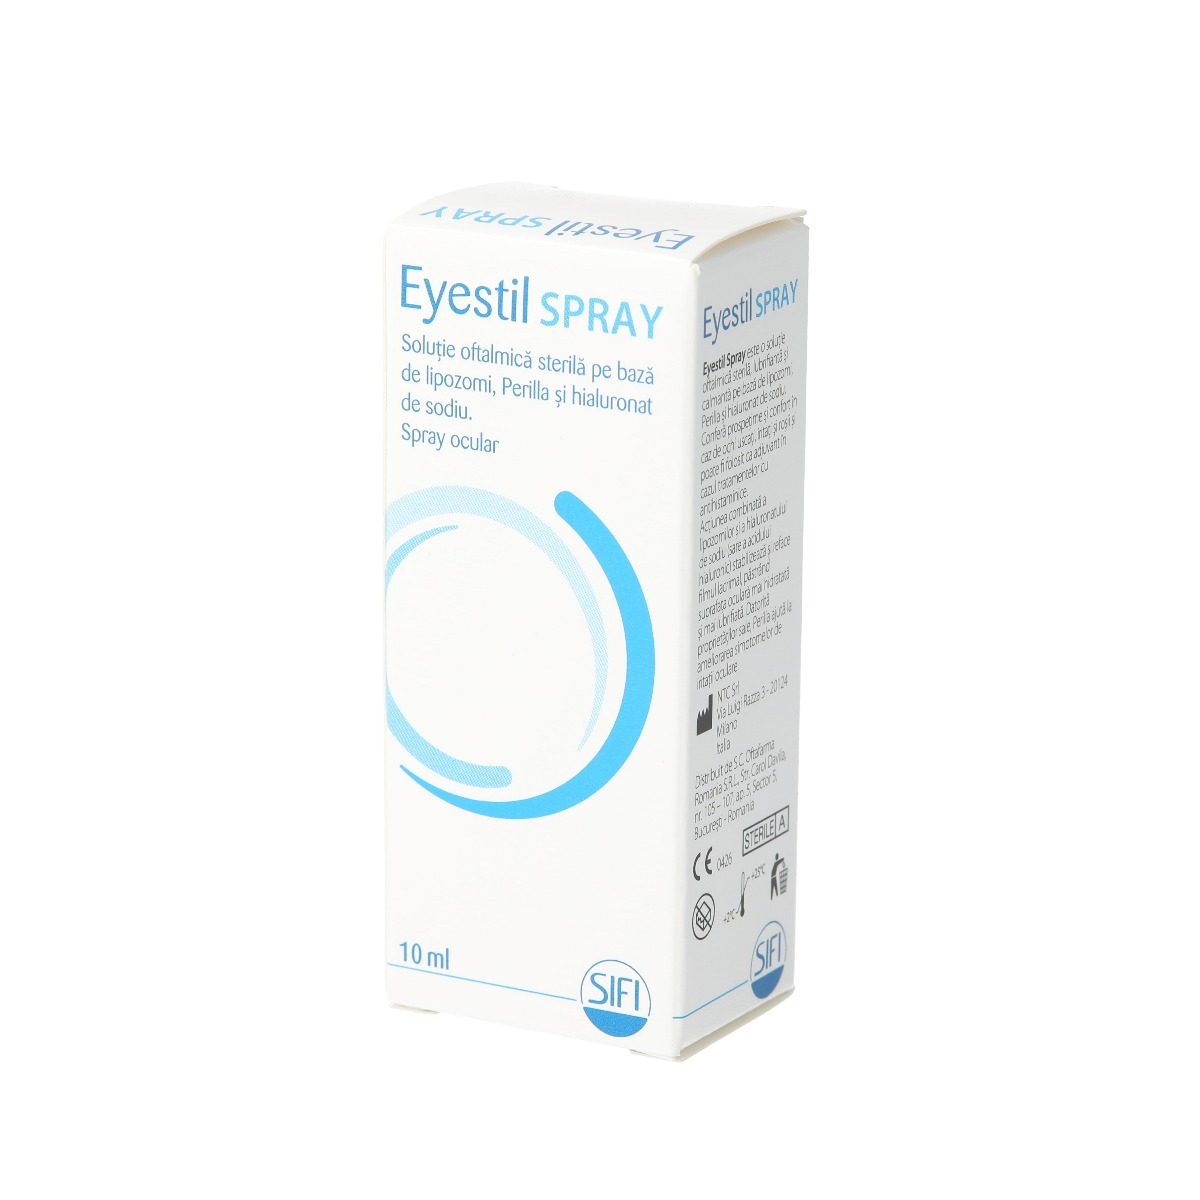 Eyestil spray ocular, 10 ml, Sifi imagine produs 2021